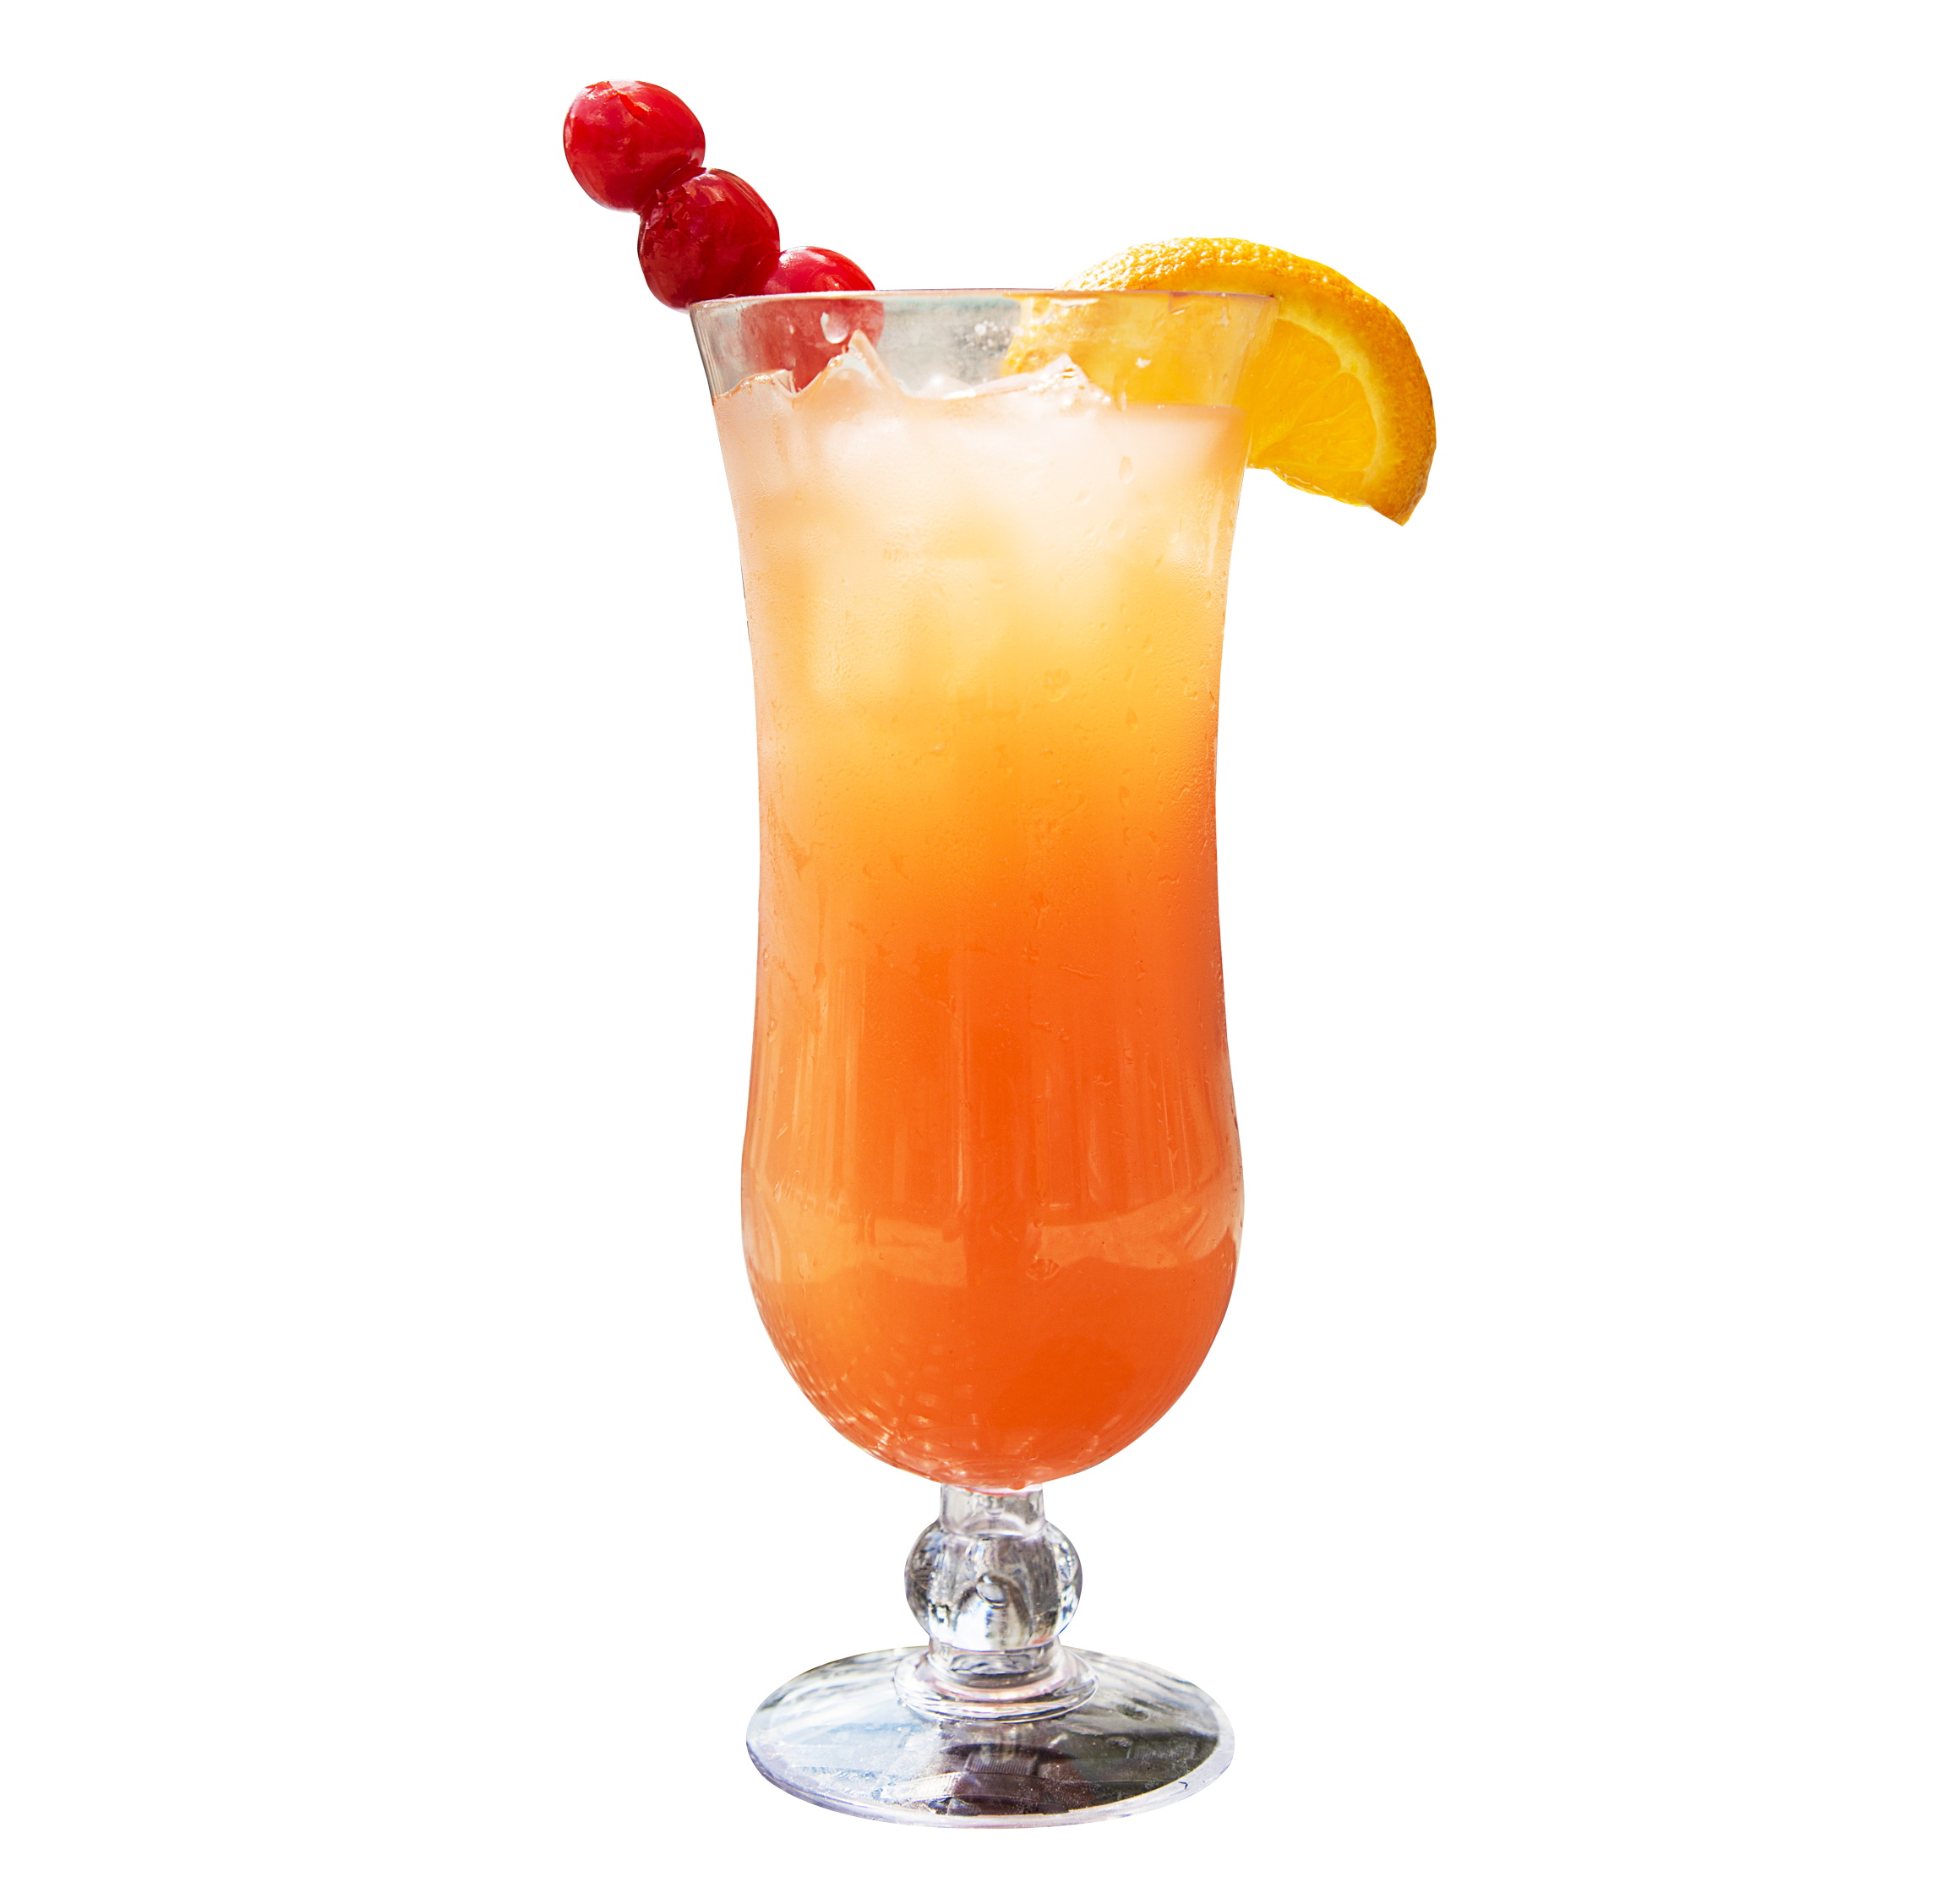 Soda glass png. Cocktail image purepng free